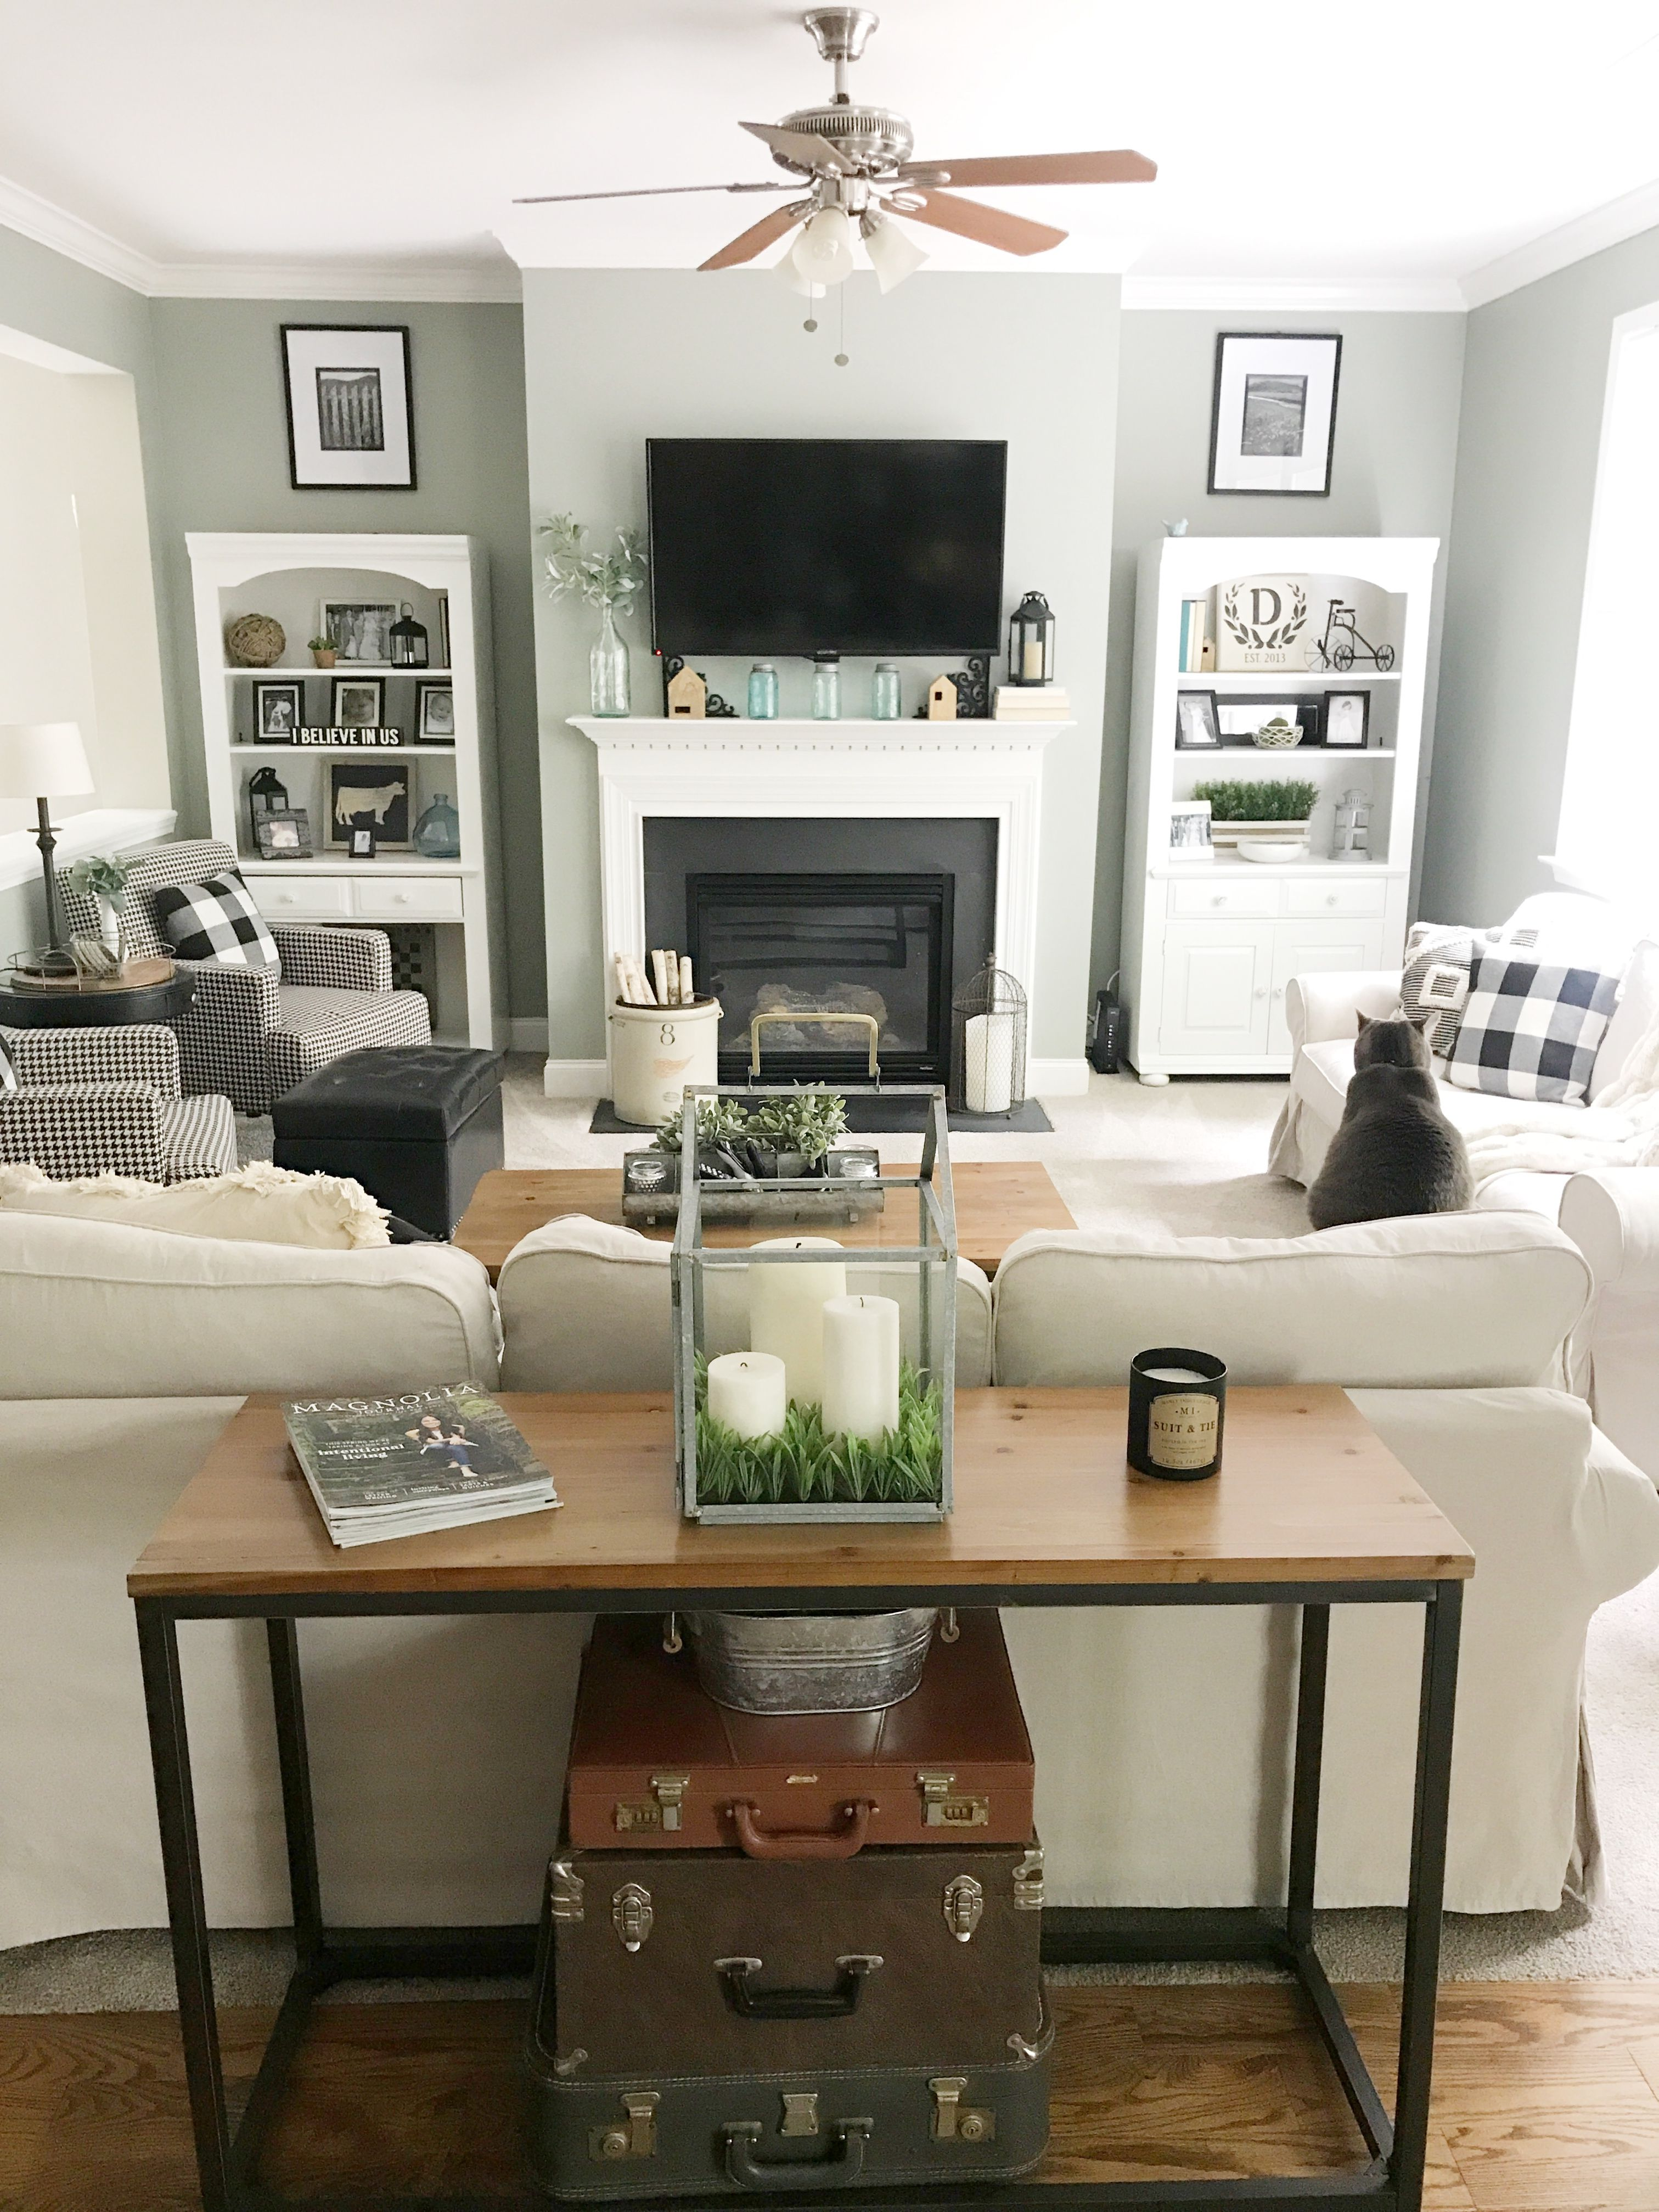 Stylishly Warm Living Room Night To Transform Your Interiors Open Concept Kitchen Living Room Living Room Warm Open Kitchen And Living Room